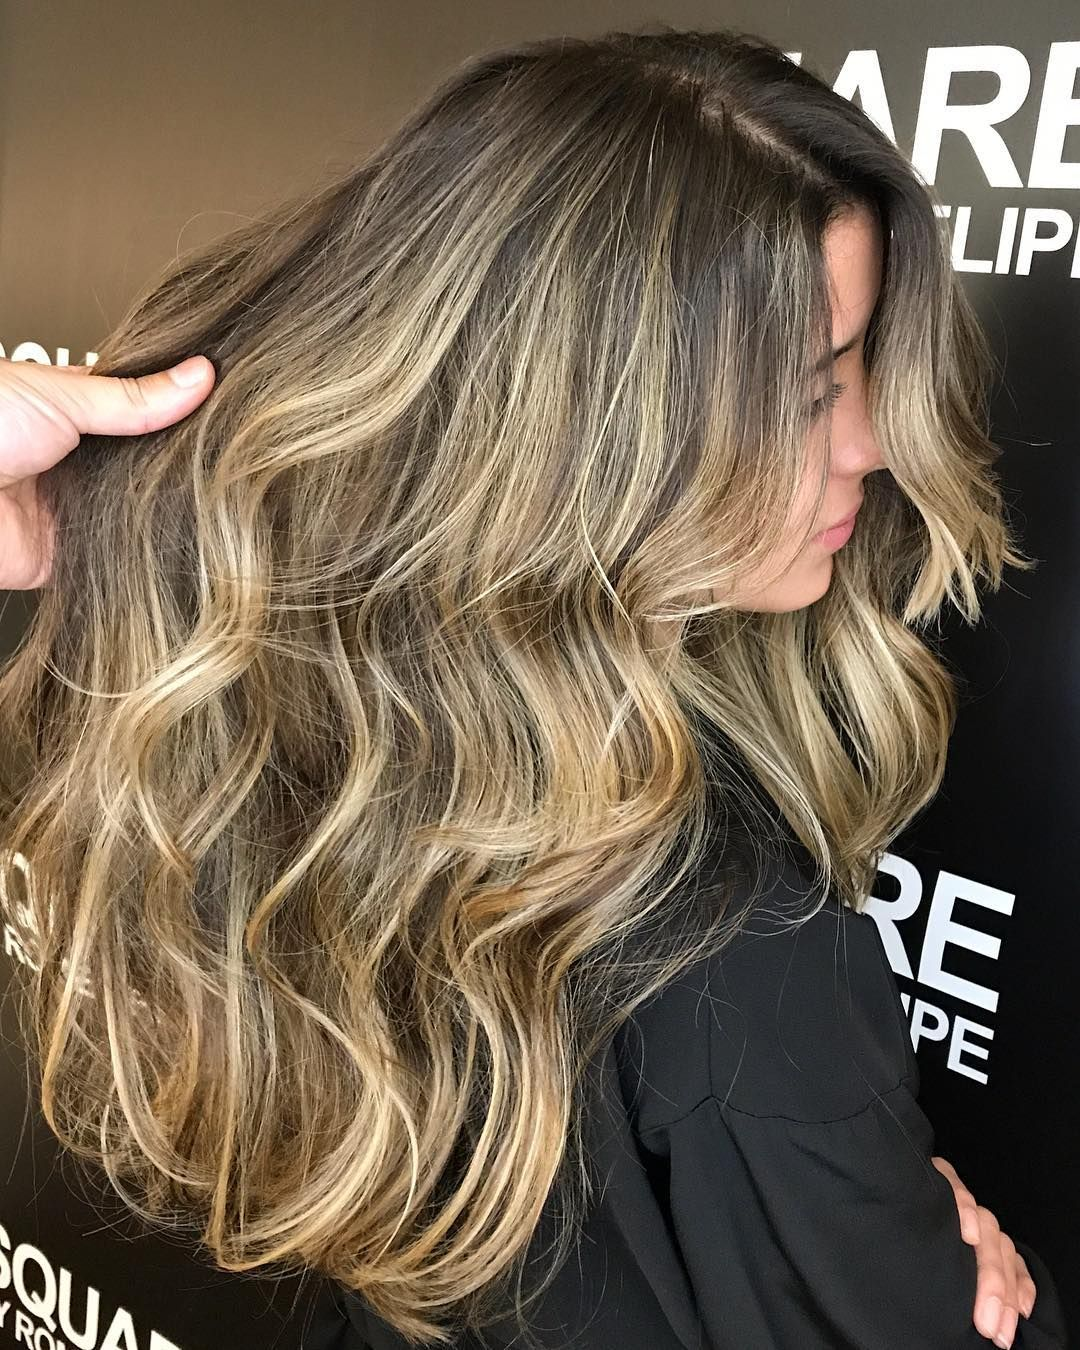 90 Best Long Layered Haircuts Hairstyles For Long Hair 2020 In 2020 Layered Haircuts Long Layered Haircuts Haircuts For Long Hair